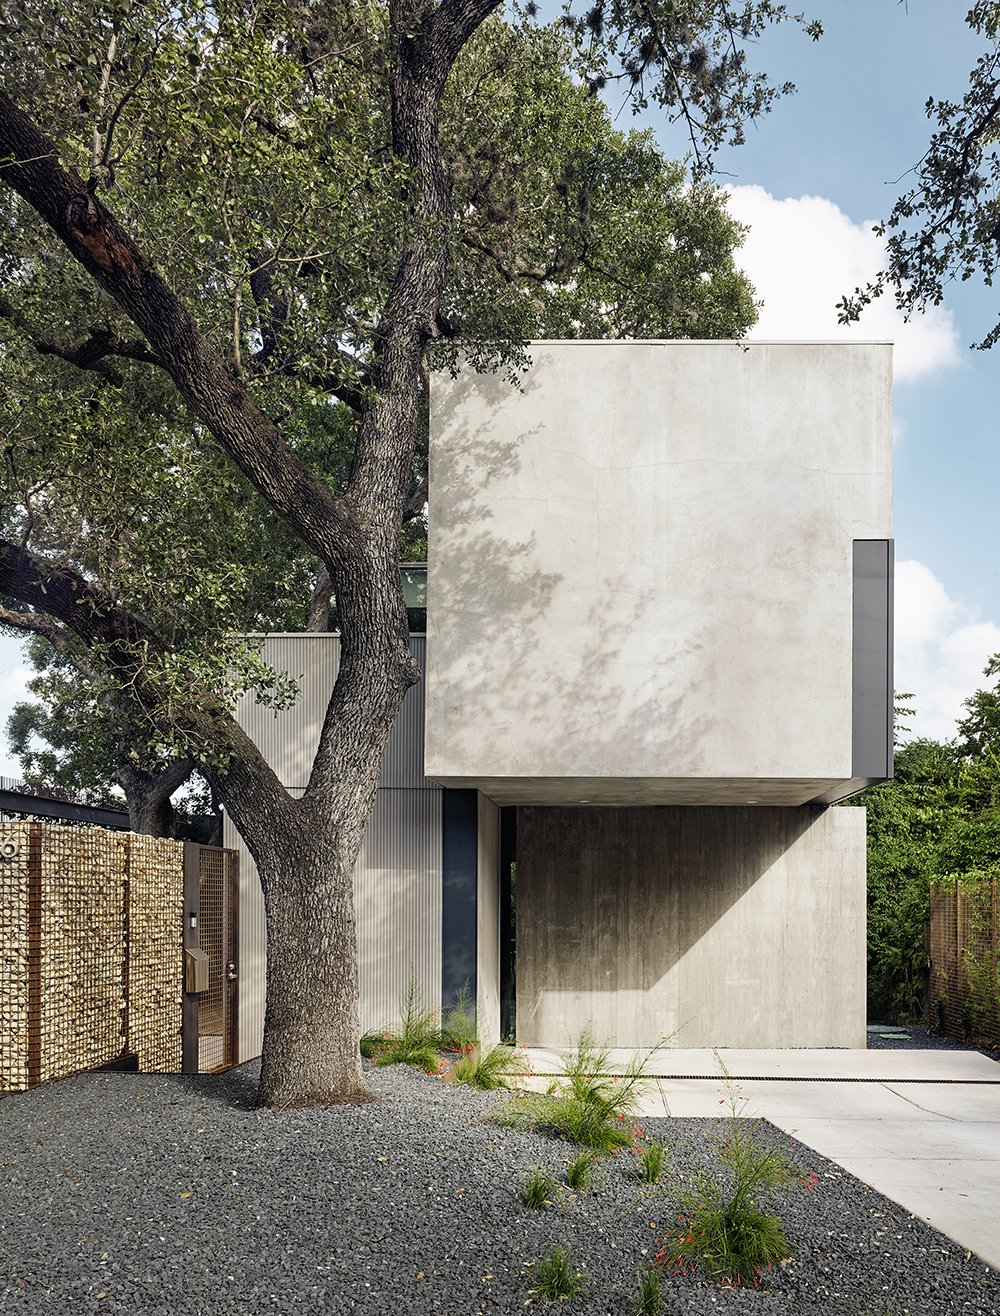 Best Photos From An Award Winning Austin Home Hits The Market At 1 9m Dwell